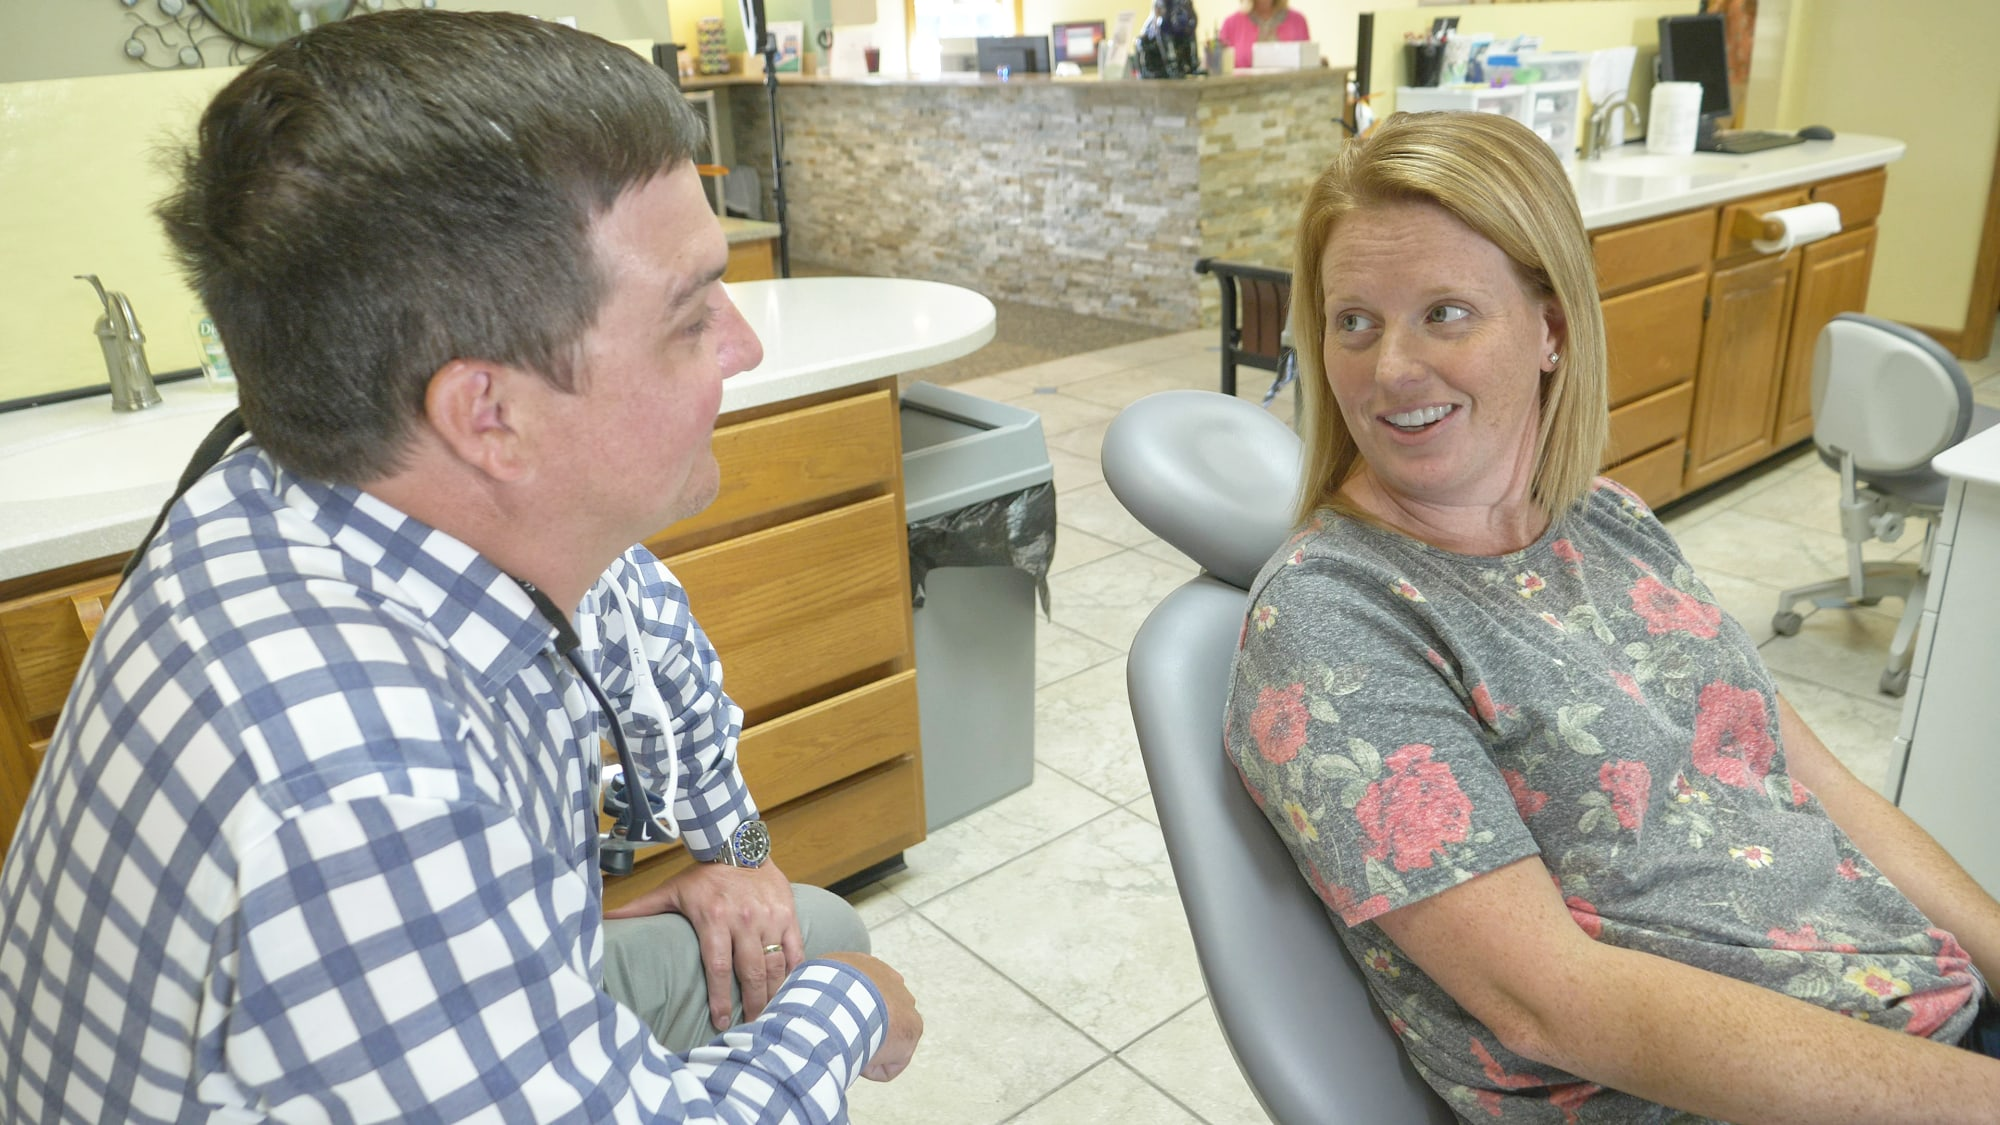 Dr. Westfall talking to a patient